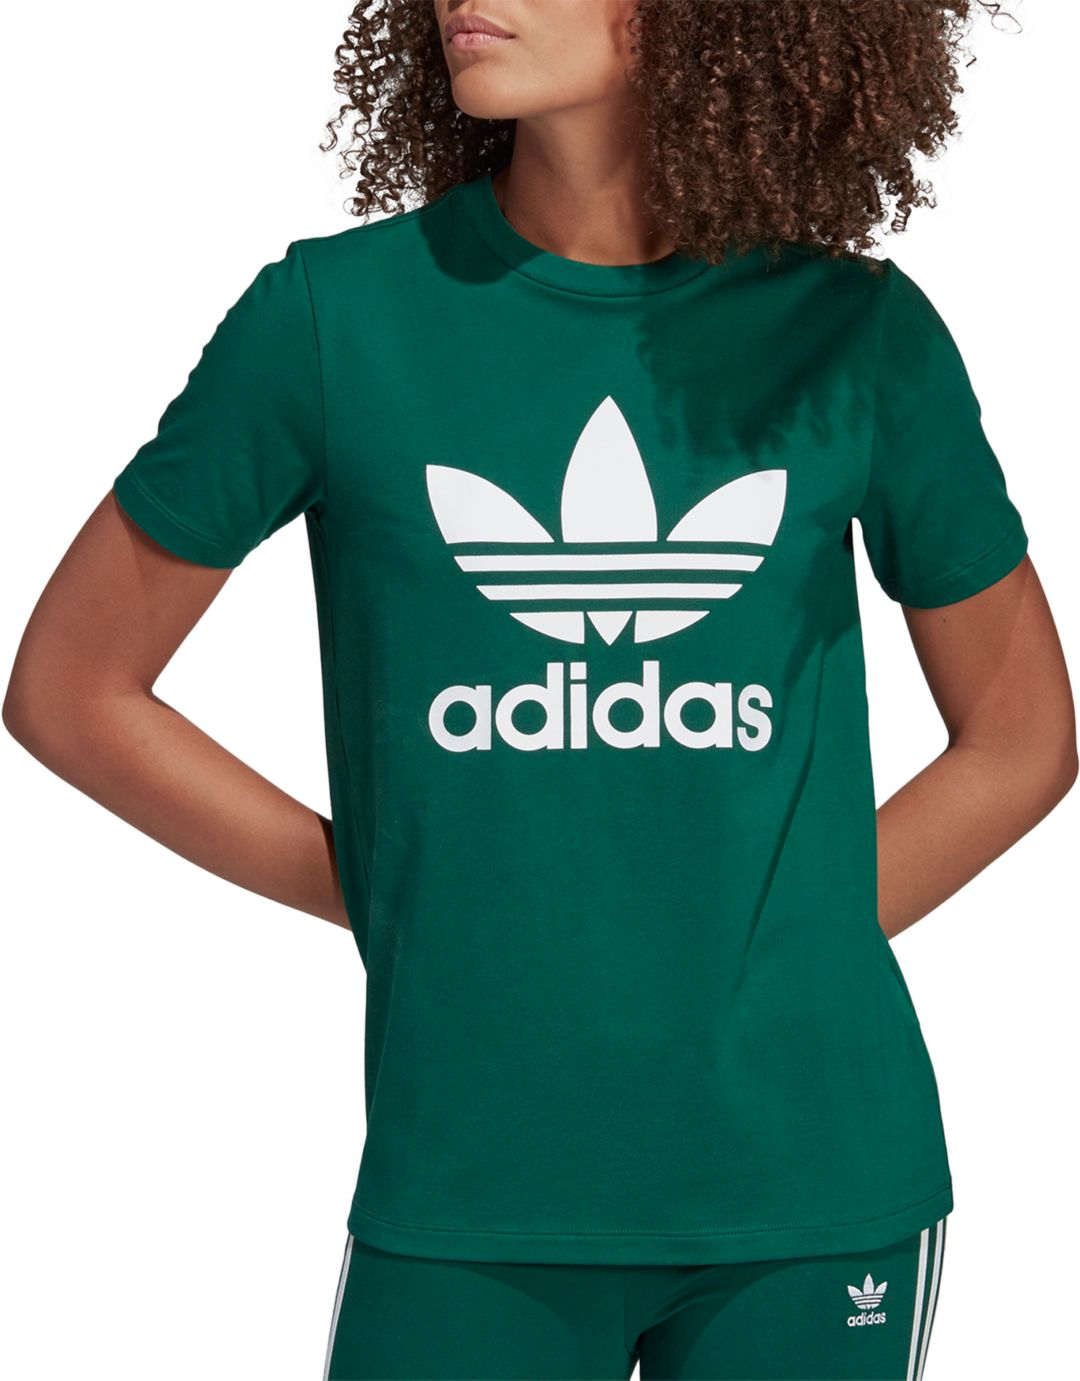 7b8b2128 adidas Originals Women's Trefoil T-Shirt | DICK'S Sporting Goods